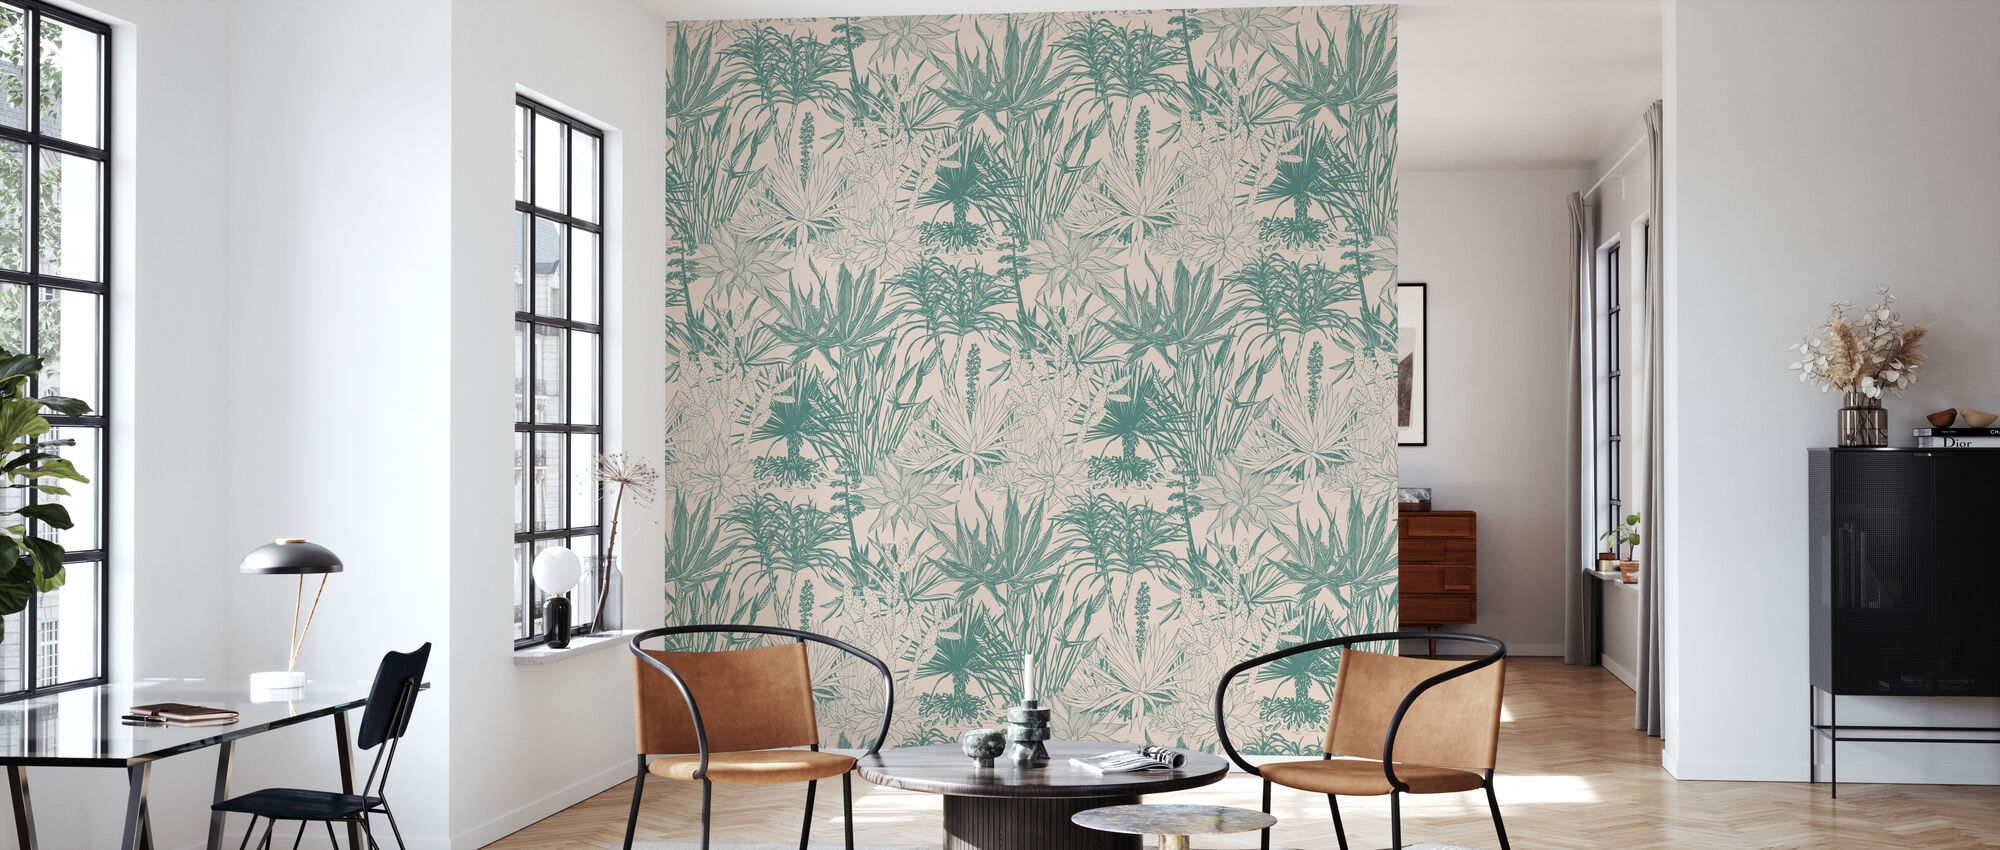 Succulents - Teal on Pink - Wallpaper - Living Room